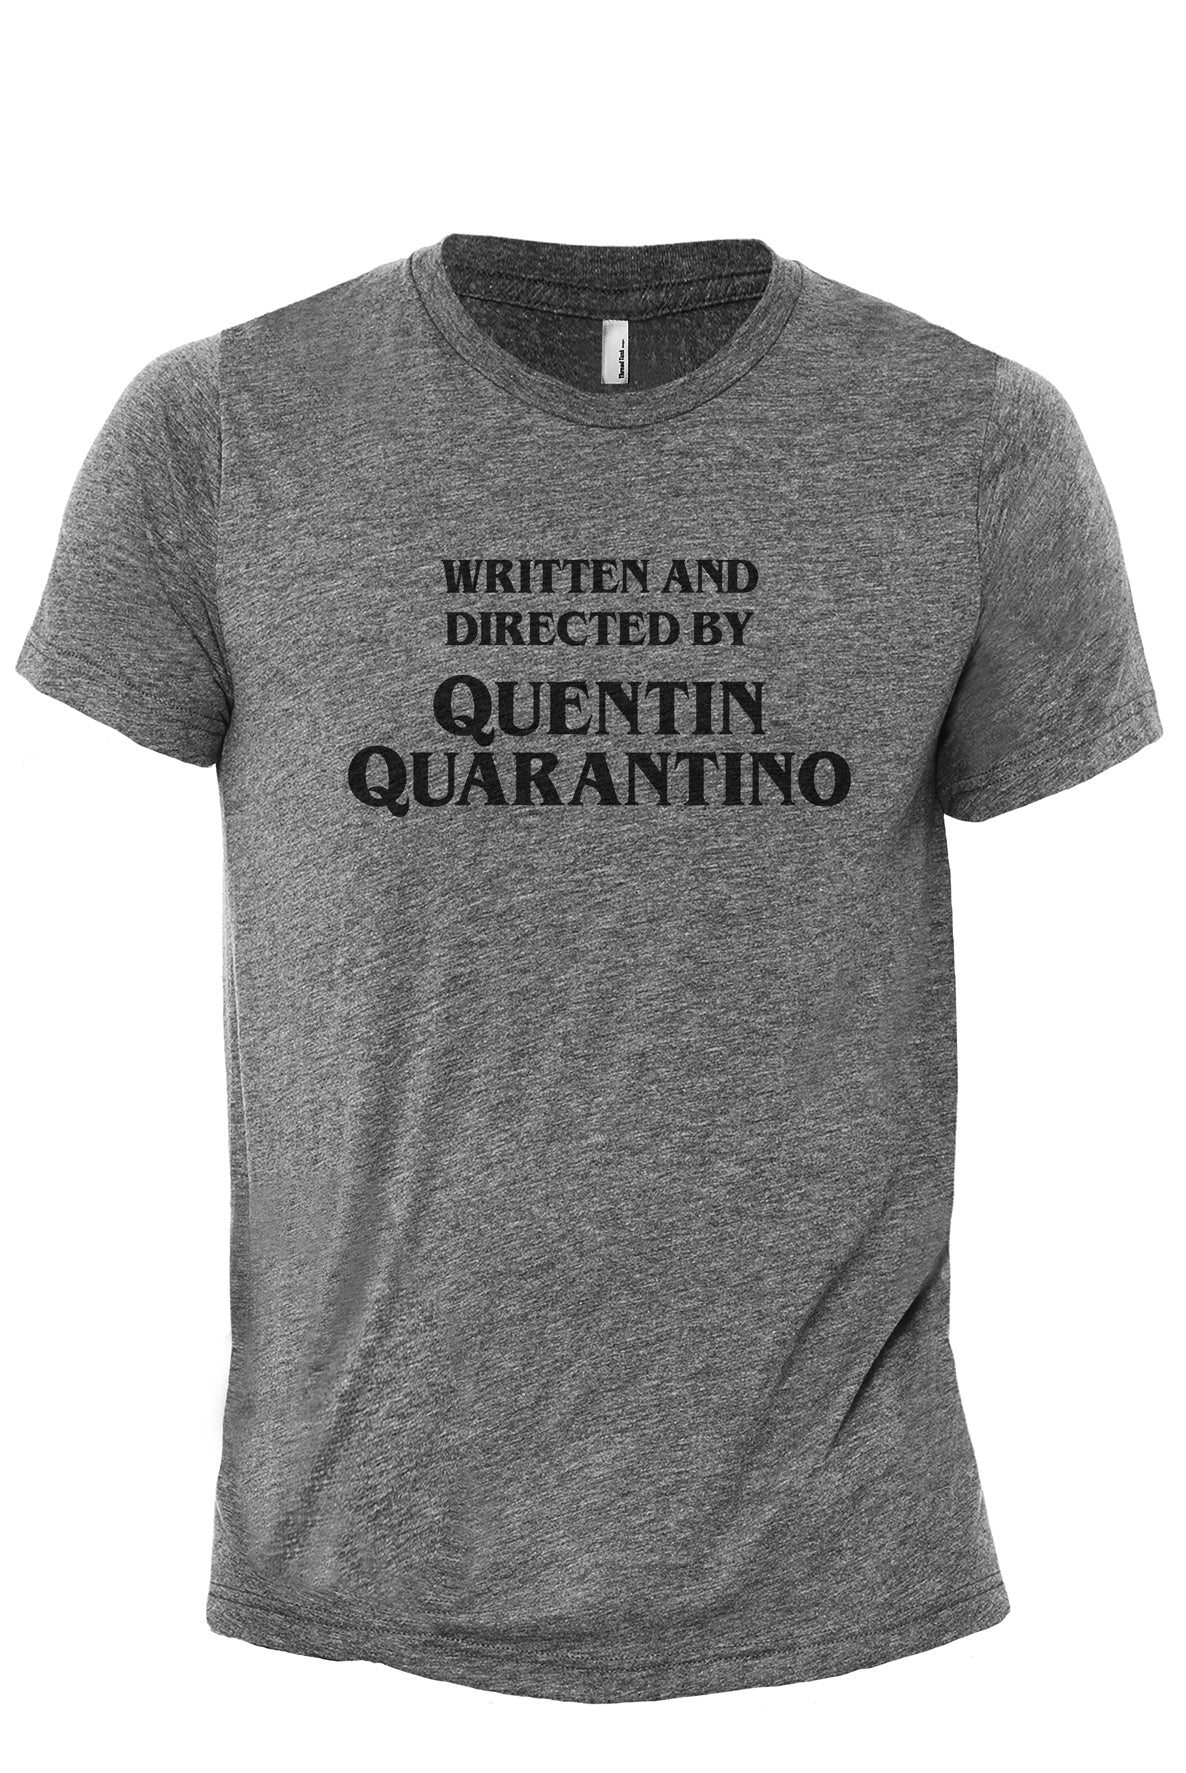 Written And Directed By Quentin Quarantino Heather Grey Printed Graphic Men's Crew T-Shirt Tee